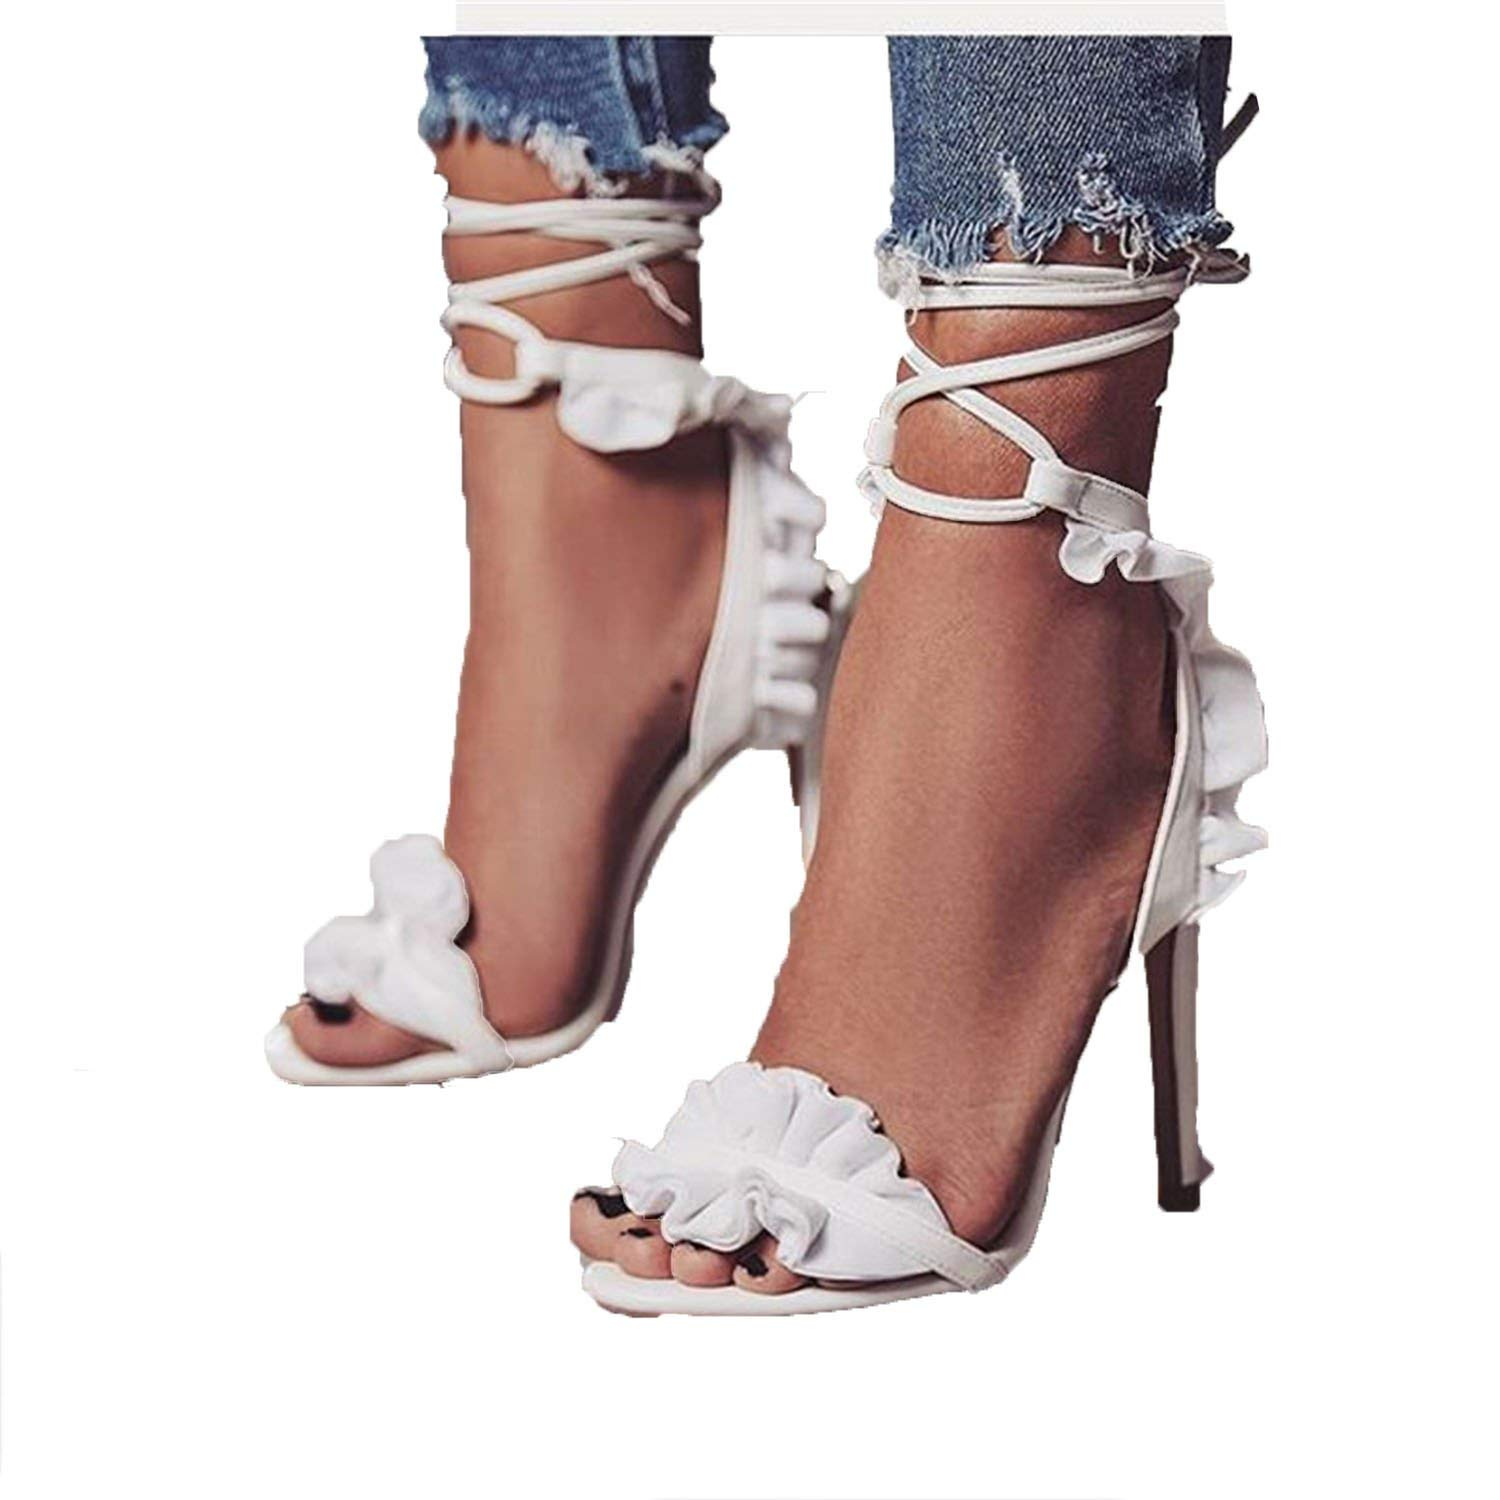 b34baa71042d Get Quotations · Romantic moments Gladiator Sandals Women high Heels Sexy  Ankle Party Shoes Strap Ruffles Ladies Thin Heel